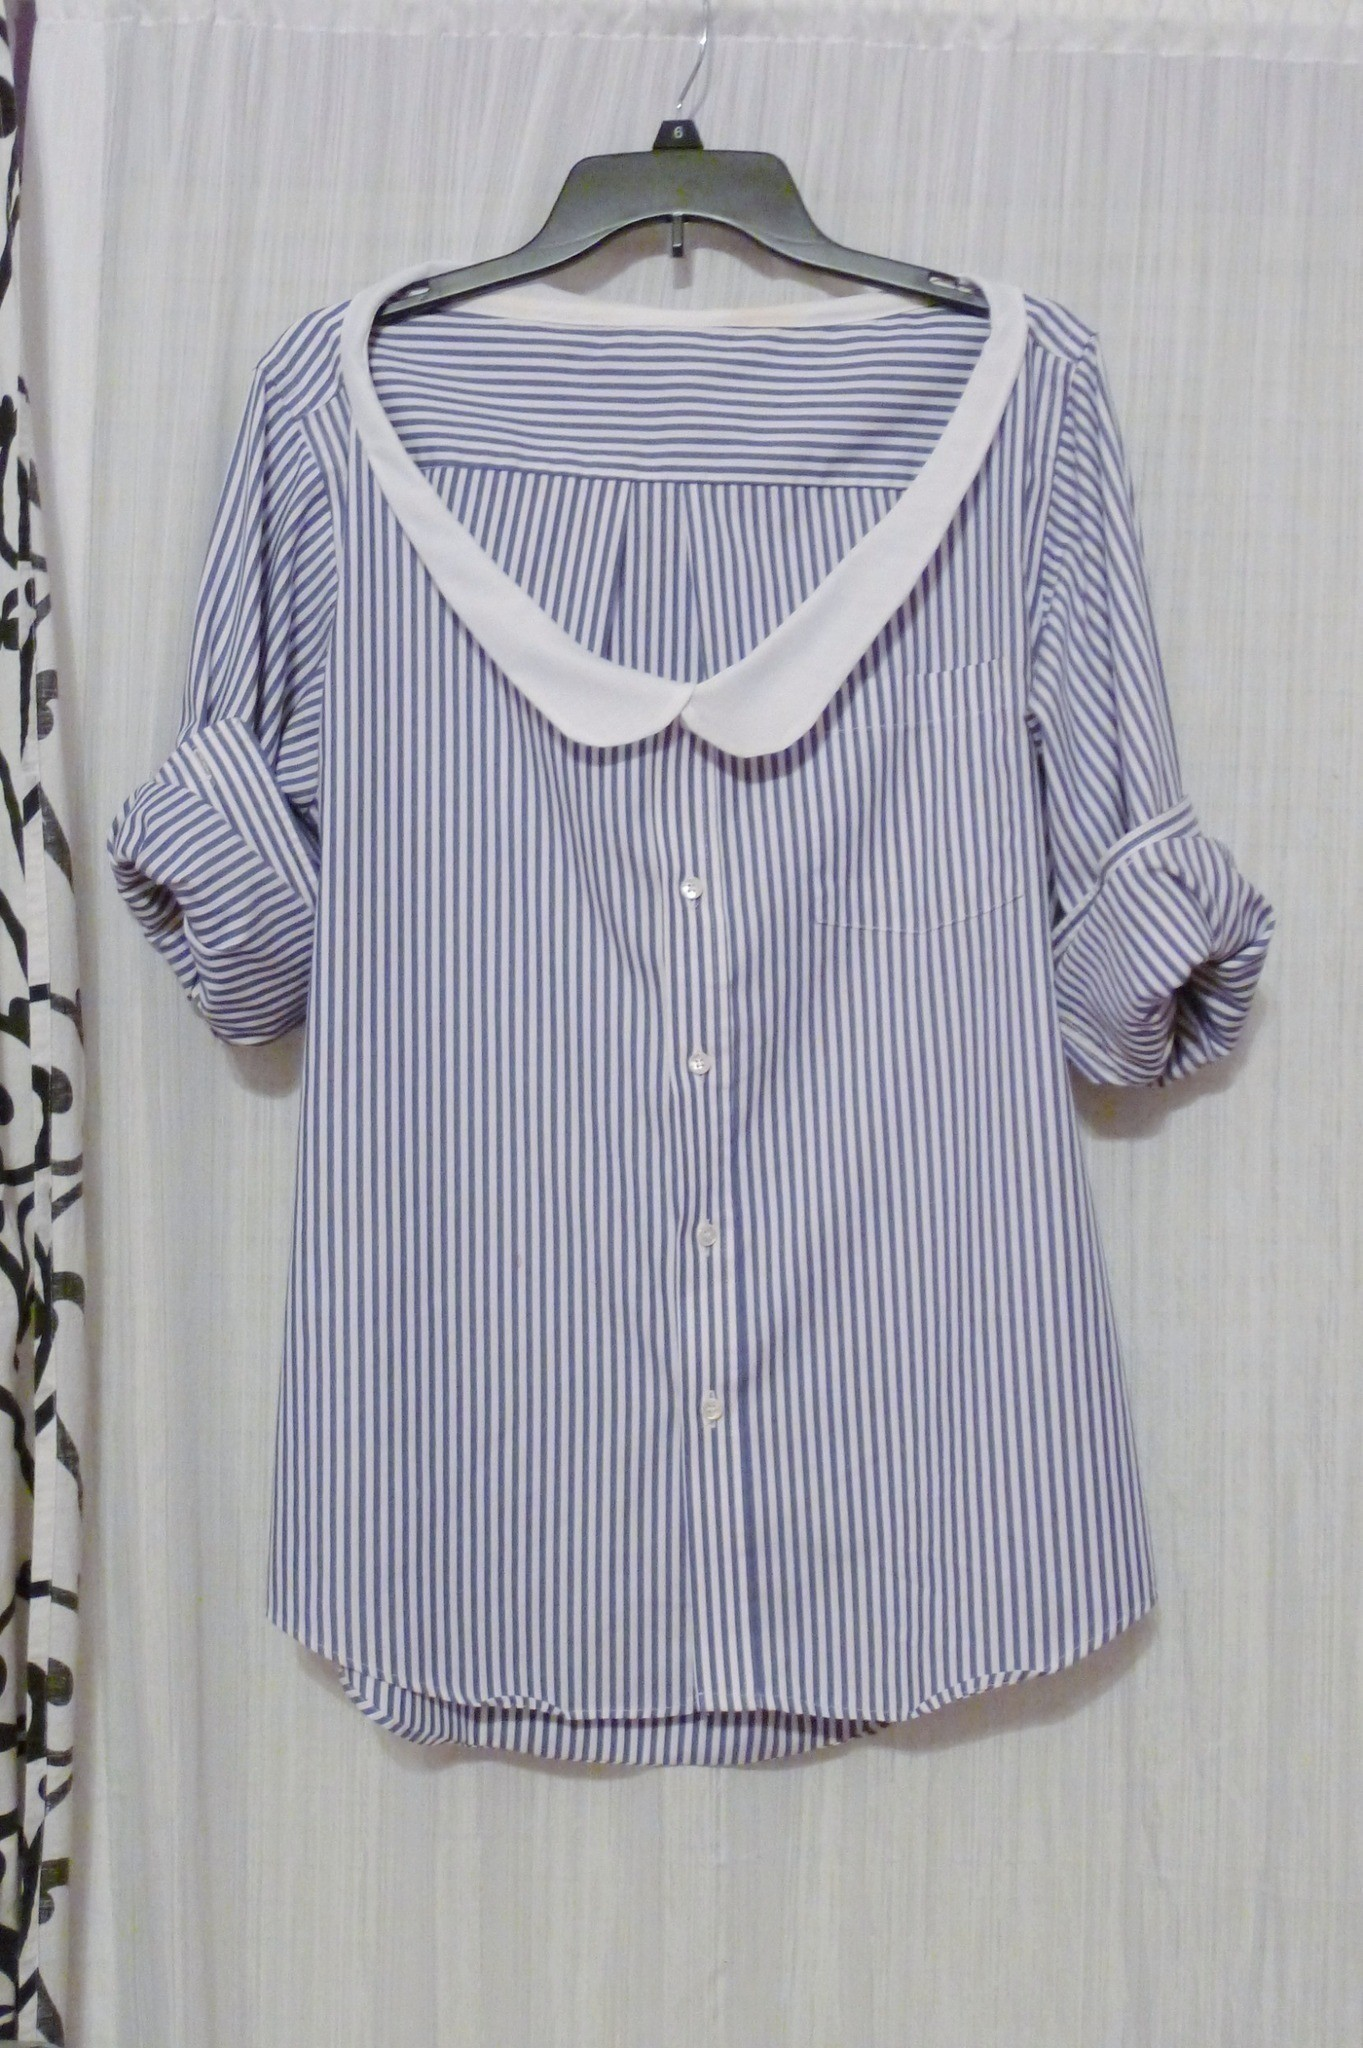 Straight Hair Cutting Video Thrifted Mens Shirt With Diy Peter Pan Collar · How To